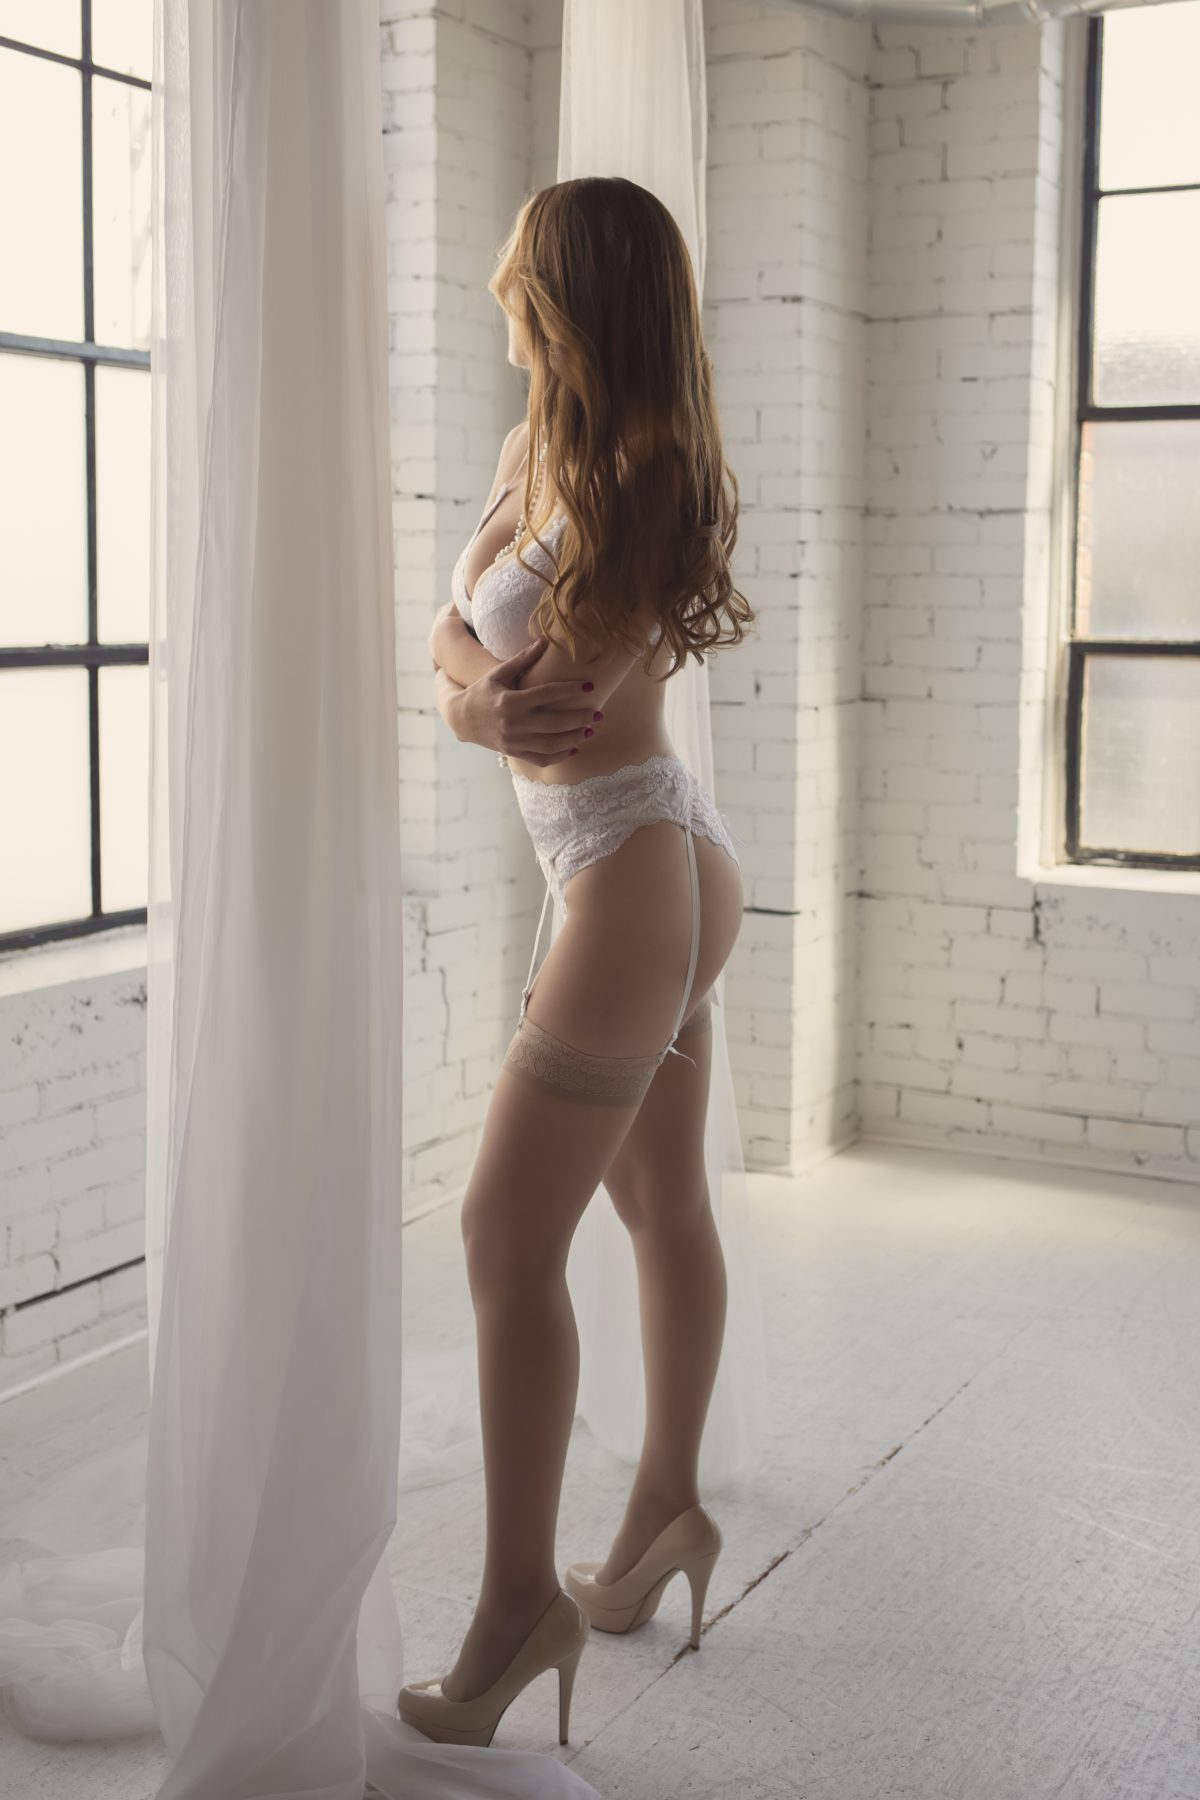 Toronto escorts companion upscale Annika Duo Couple-friendly Non-smoking Mature Slender Curvy Tall Breasts Natural Brunette Redhead European Tattoos None